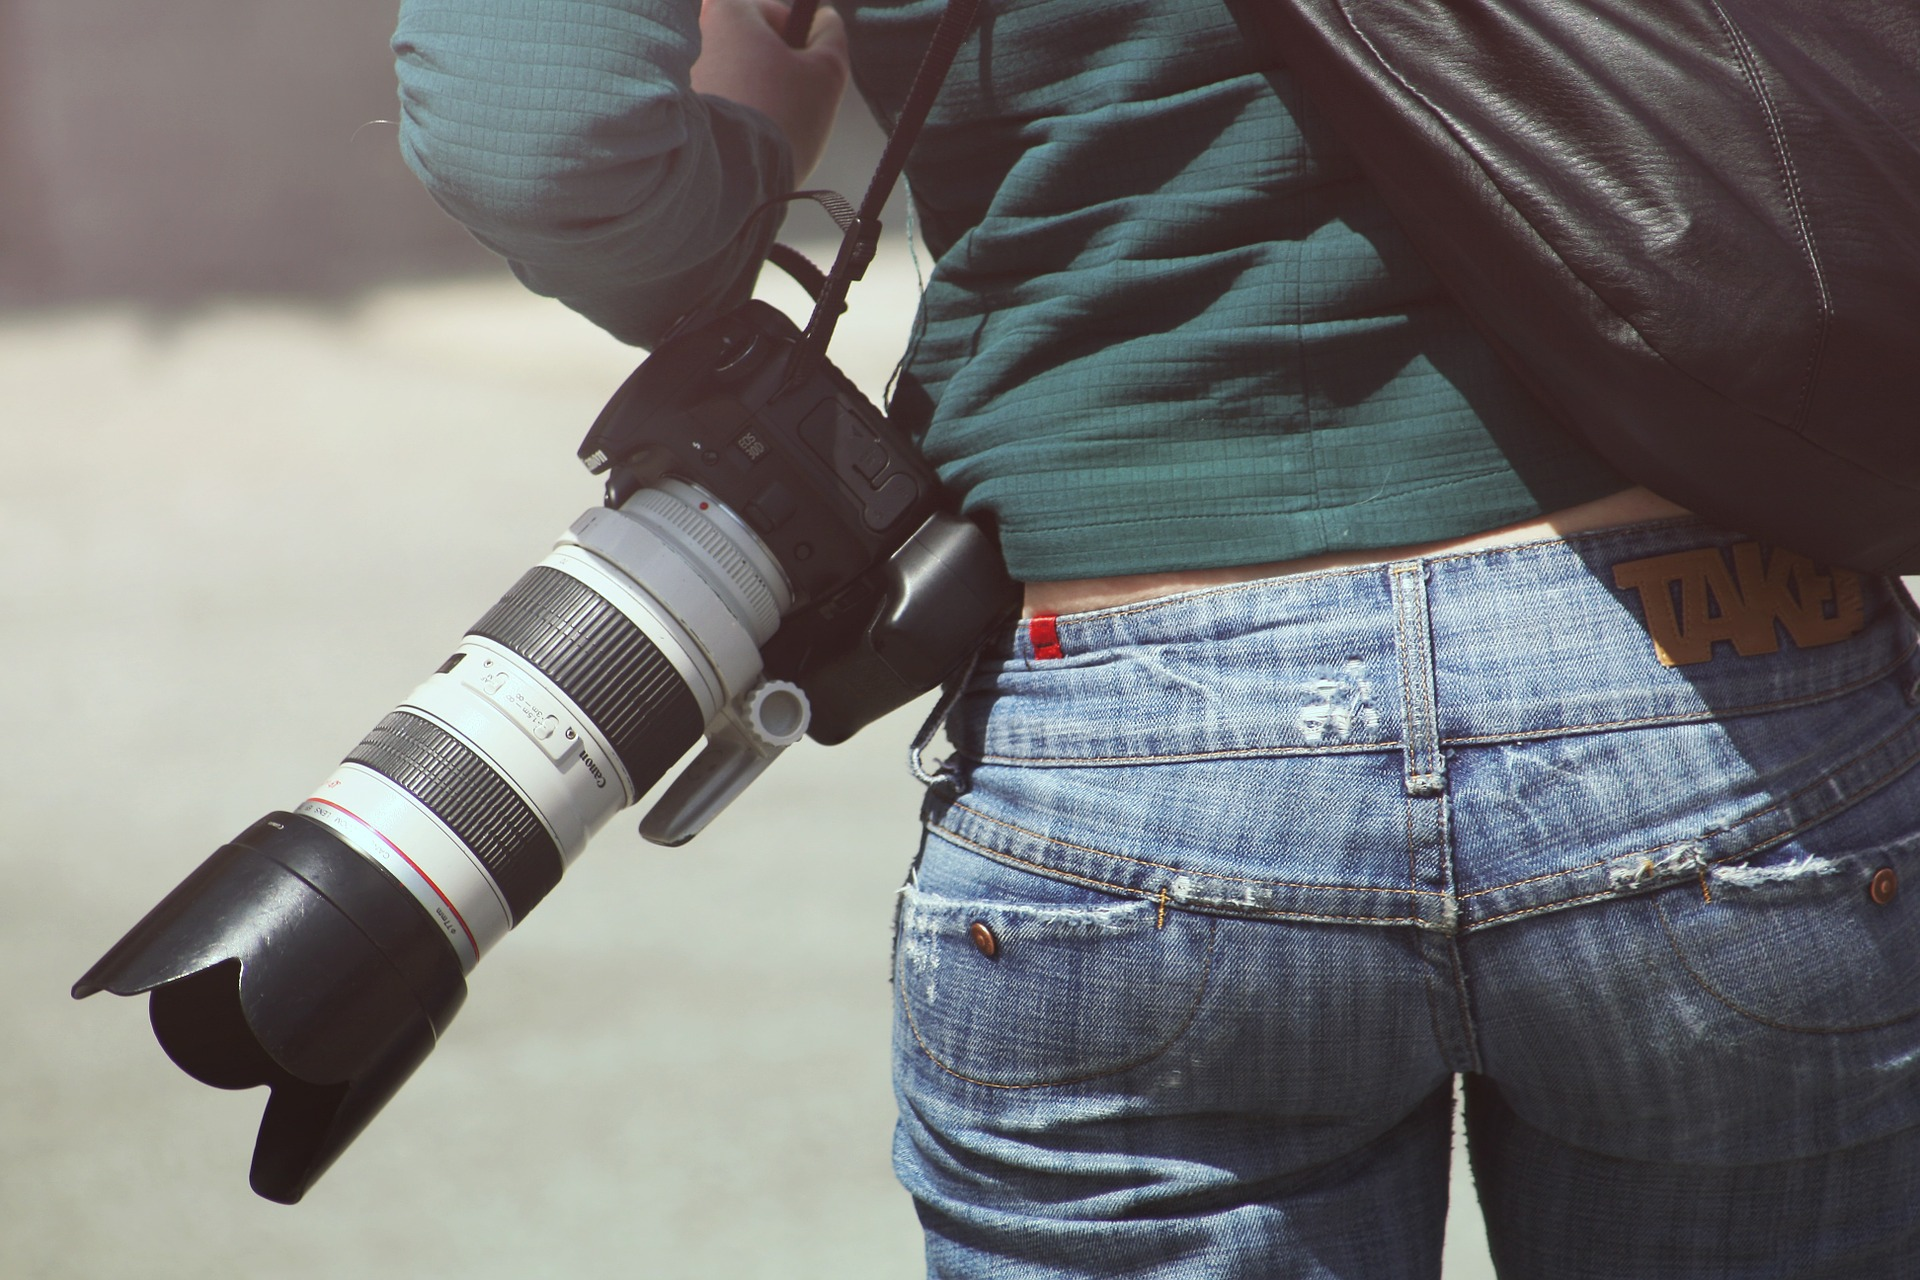 Photographer holding camera with long lens